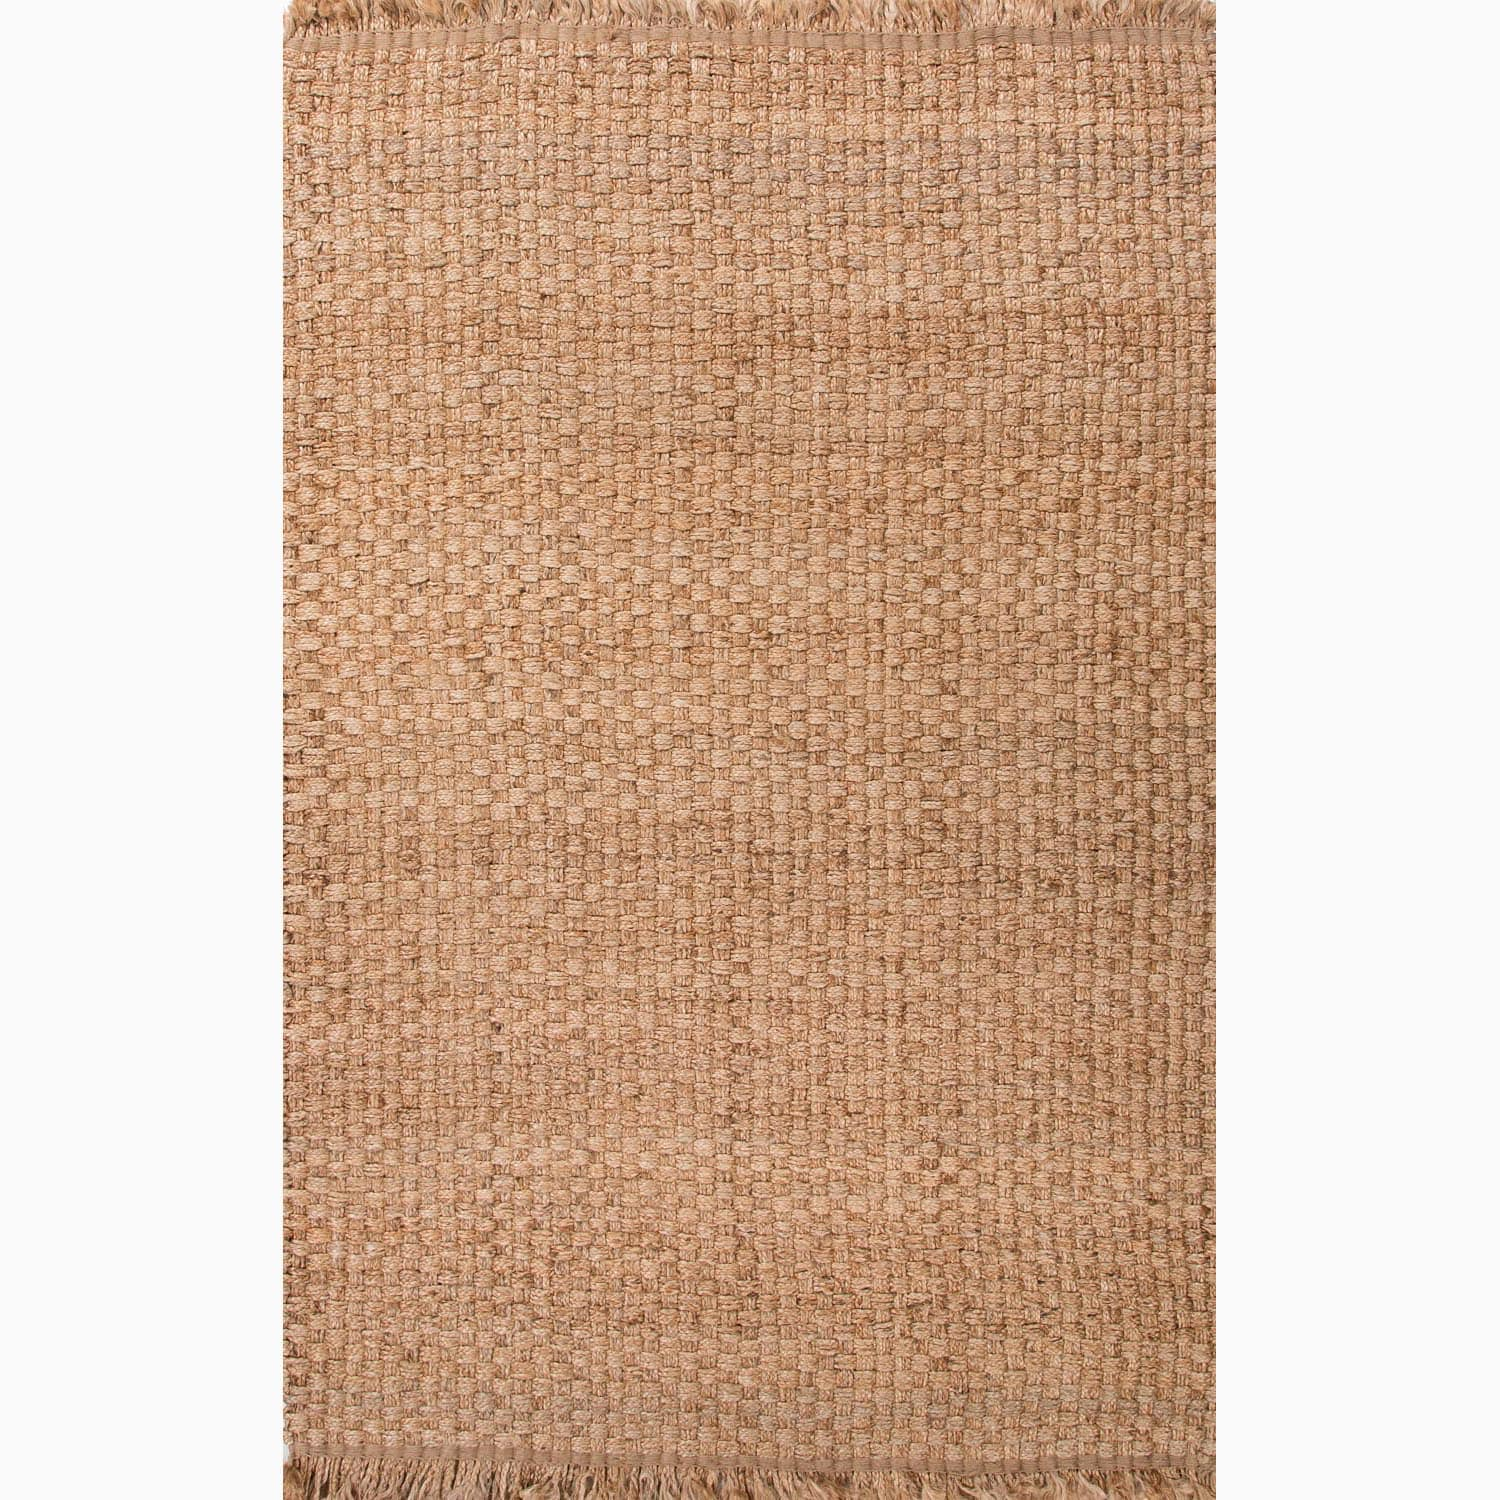 Handmade Taupe/ Tan Hemp Eco-friendly Area Rug (8' x 10')